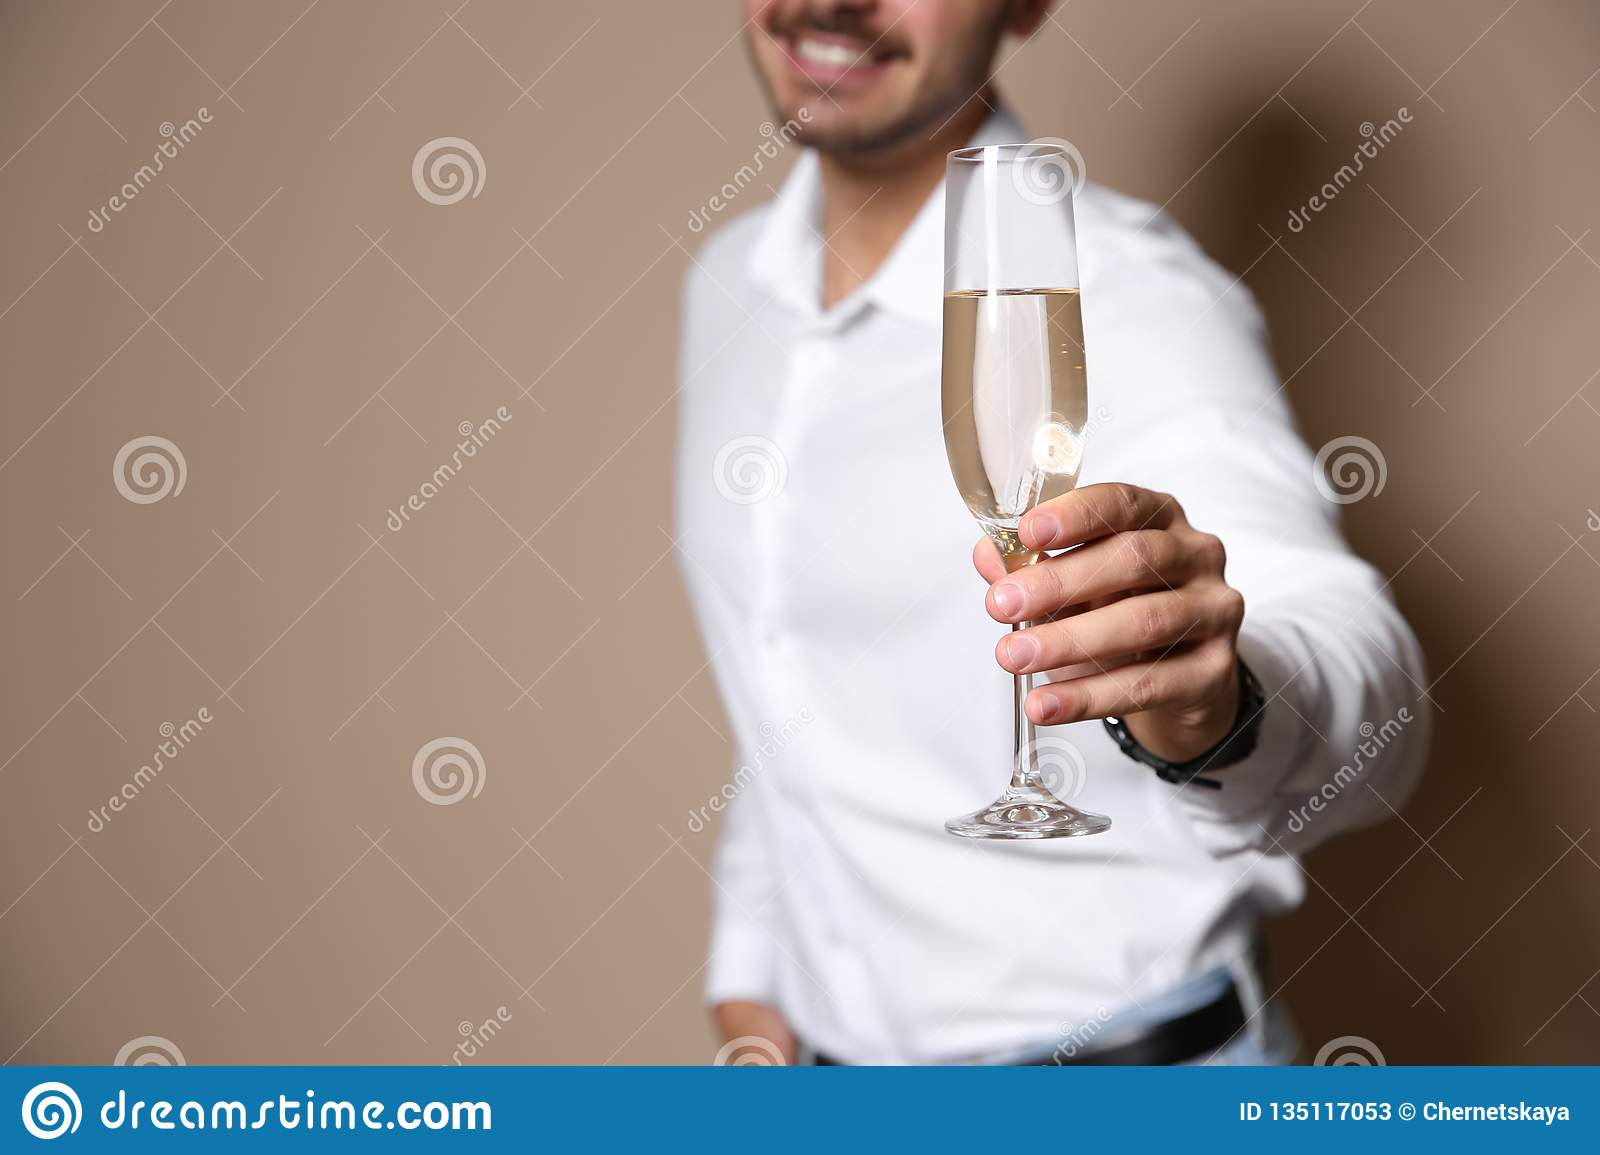 Handsome man with glass of champagne on color background, closeup.